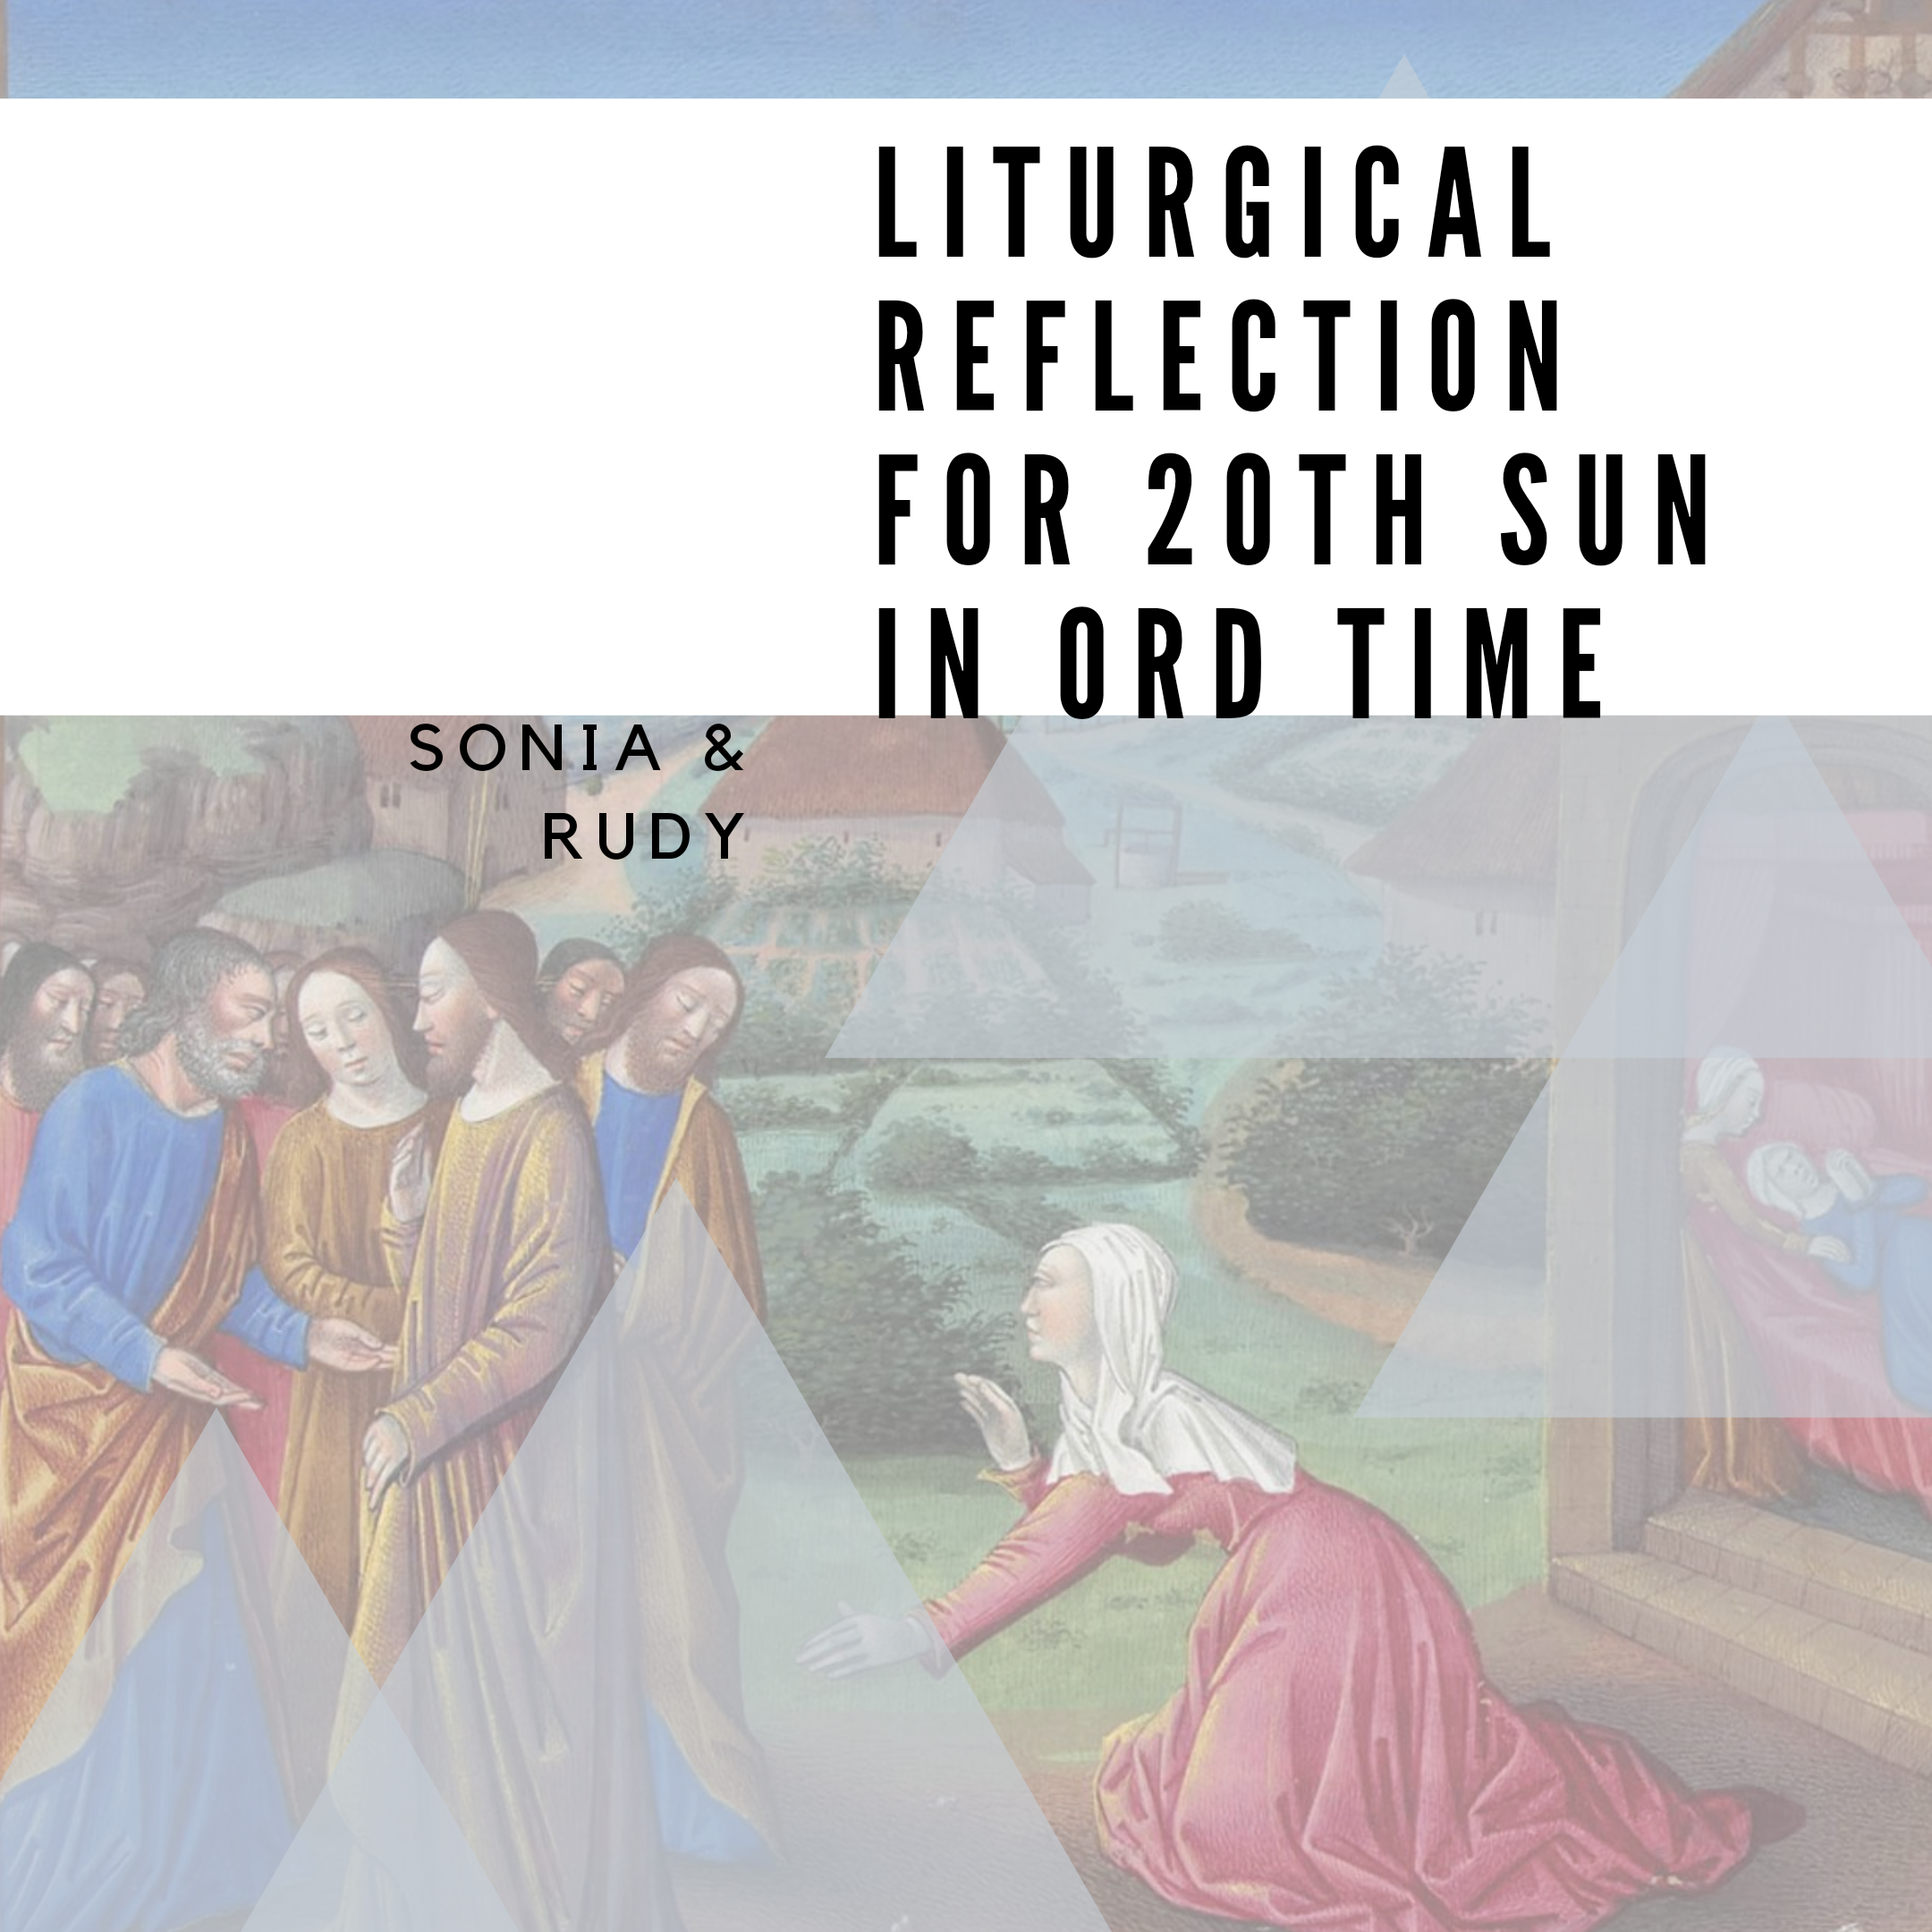 Liturgical Reflection for 20th Sunday in Ordinary Time (16th August 2020)